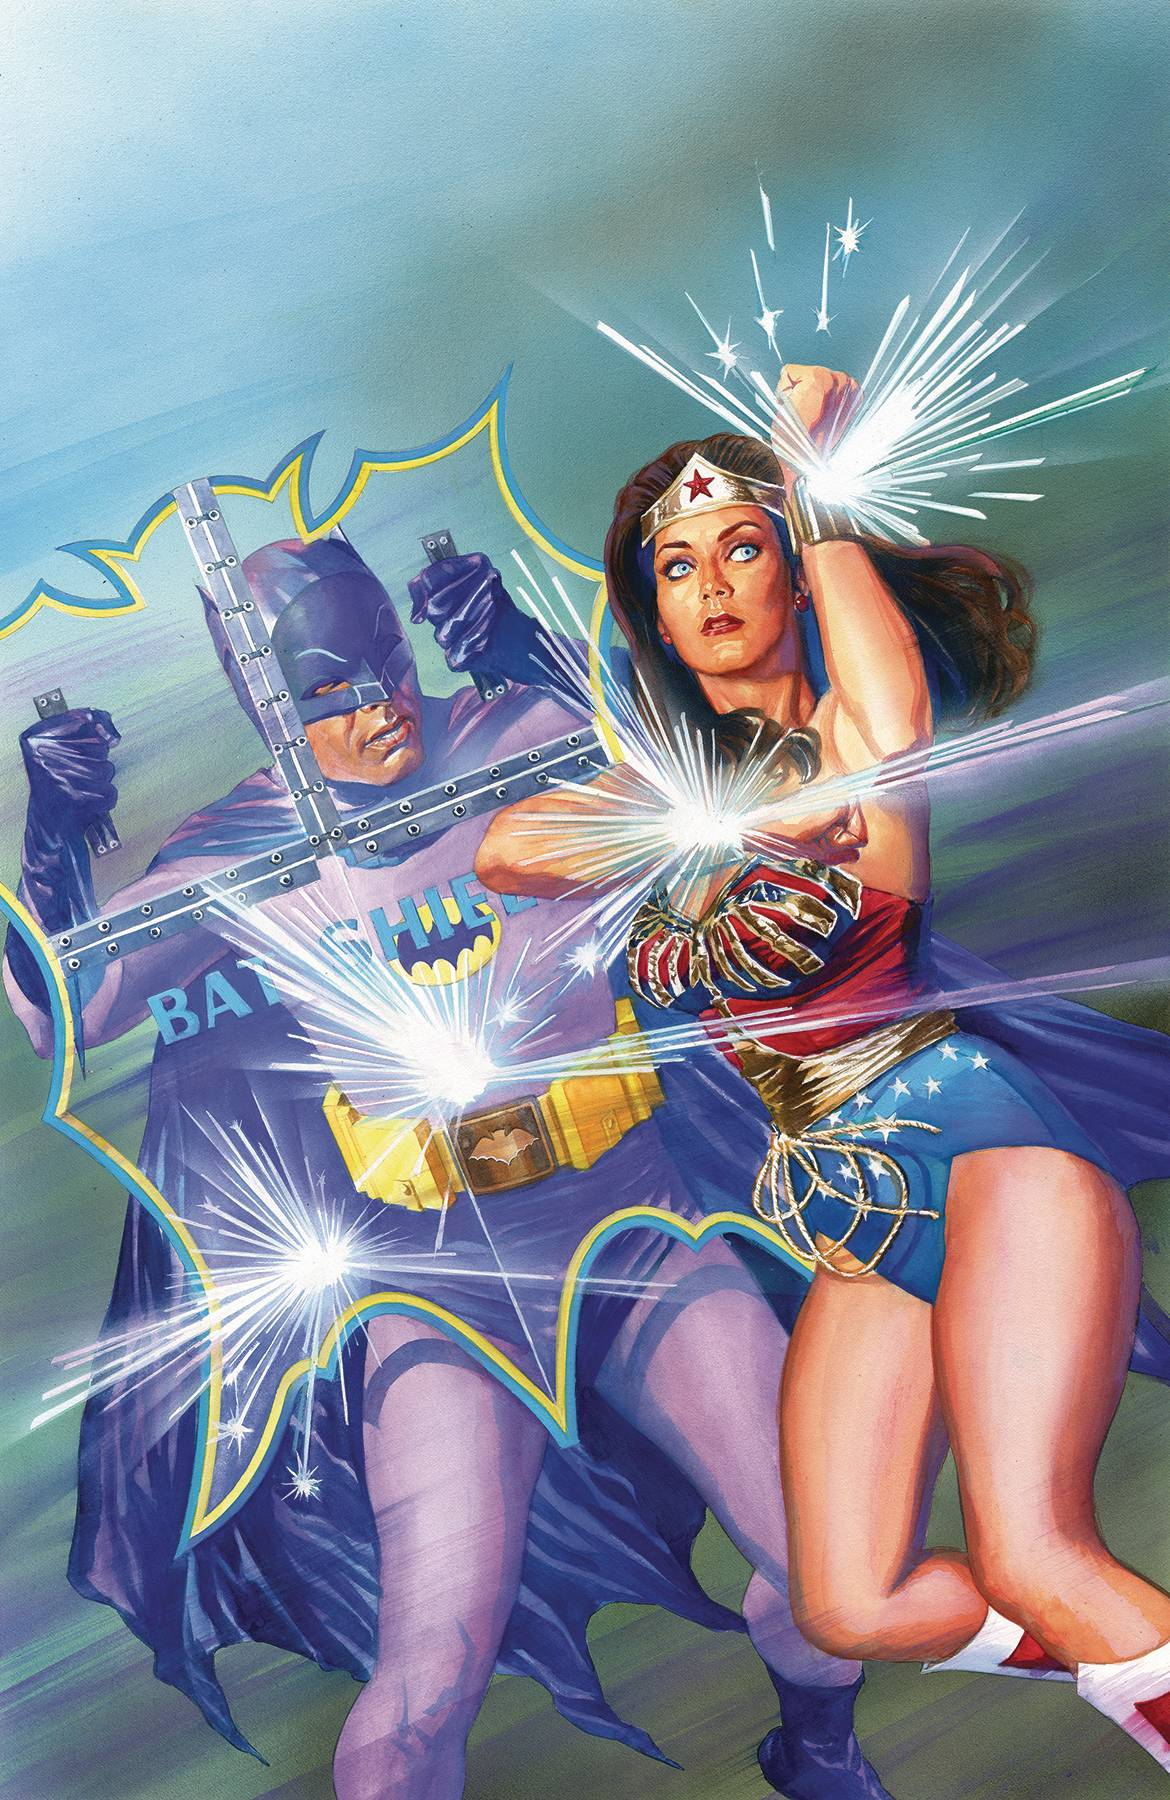 BATMAN 66 MEETS WONDER WOMAN 77 #1